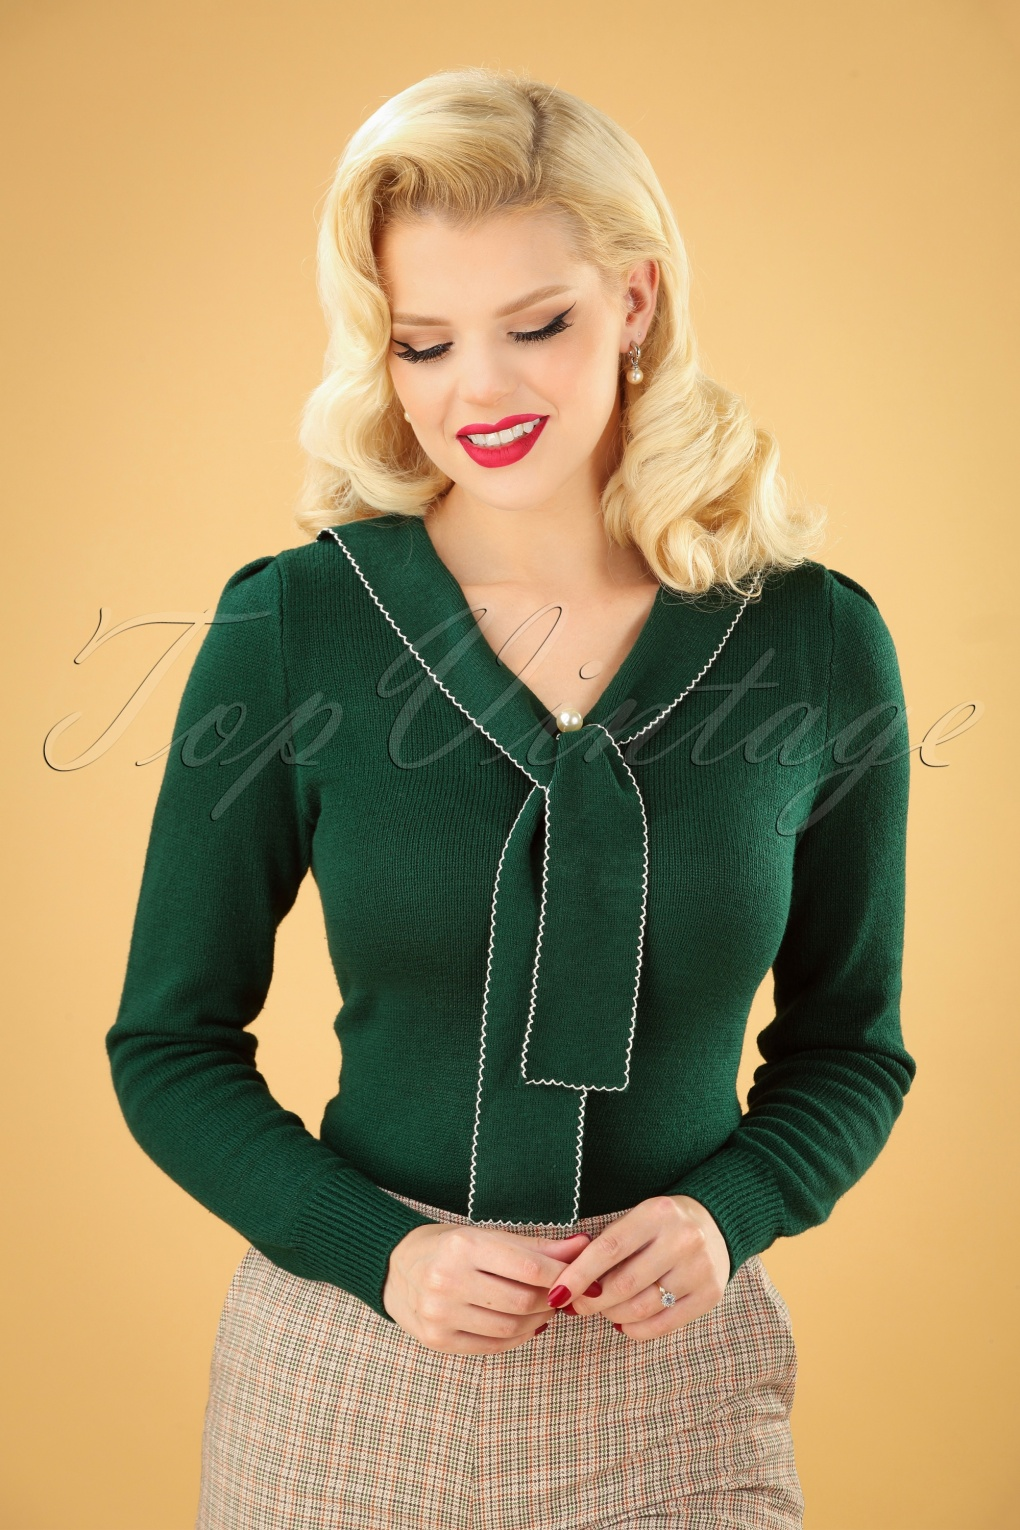 Vintage Inspired Dresses & Clothing UK 40s Connie Jumper in Dark Green £35.61 AT vintagedancer.com